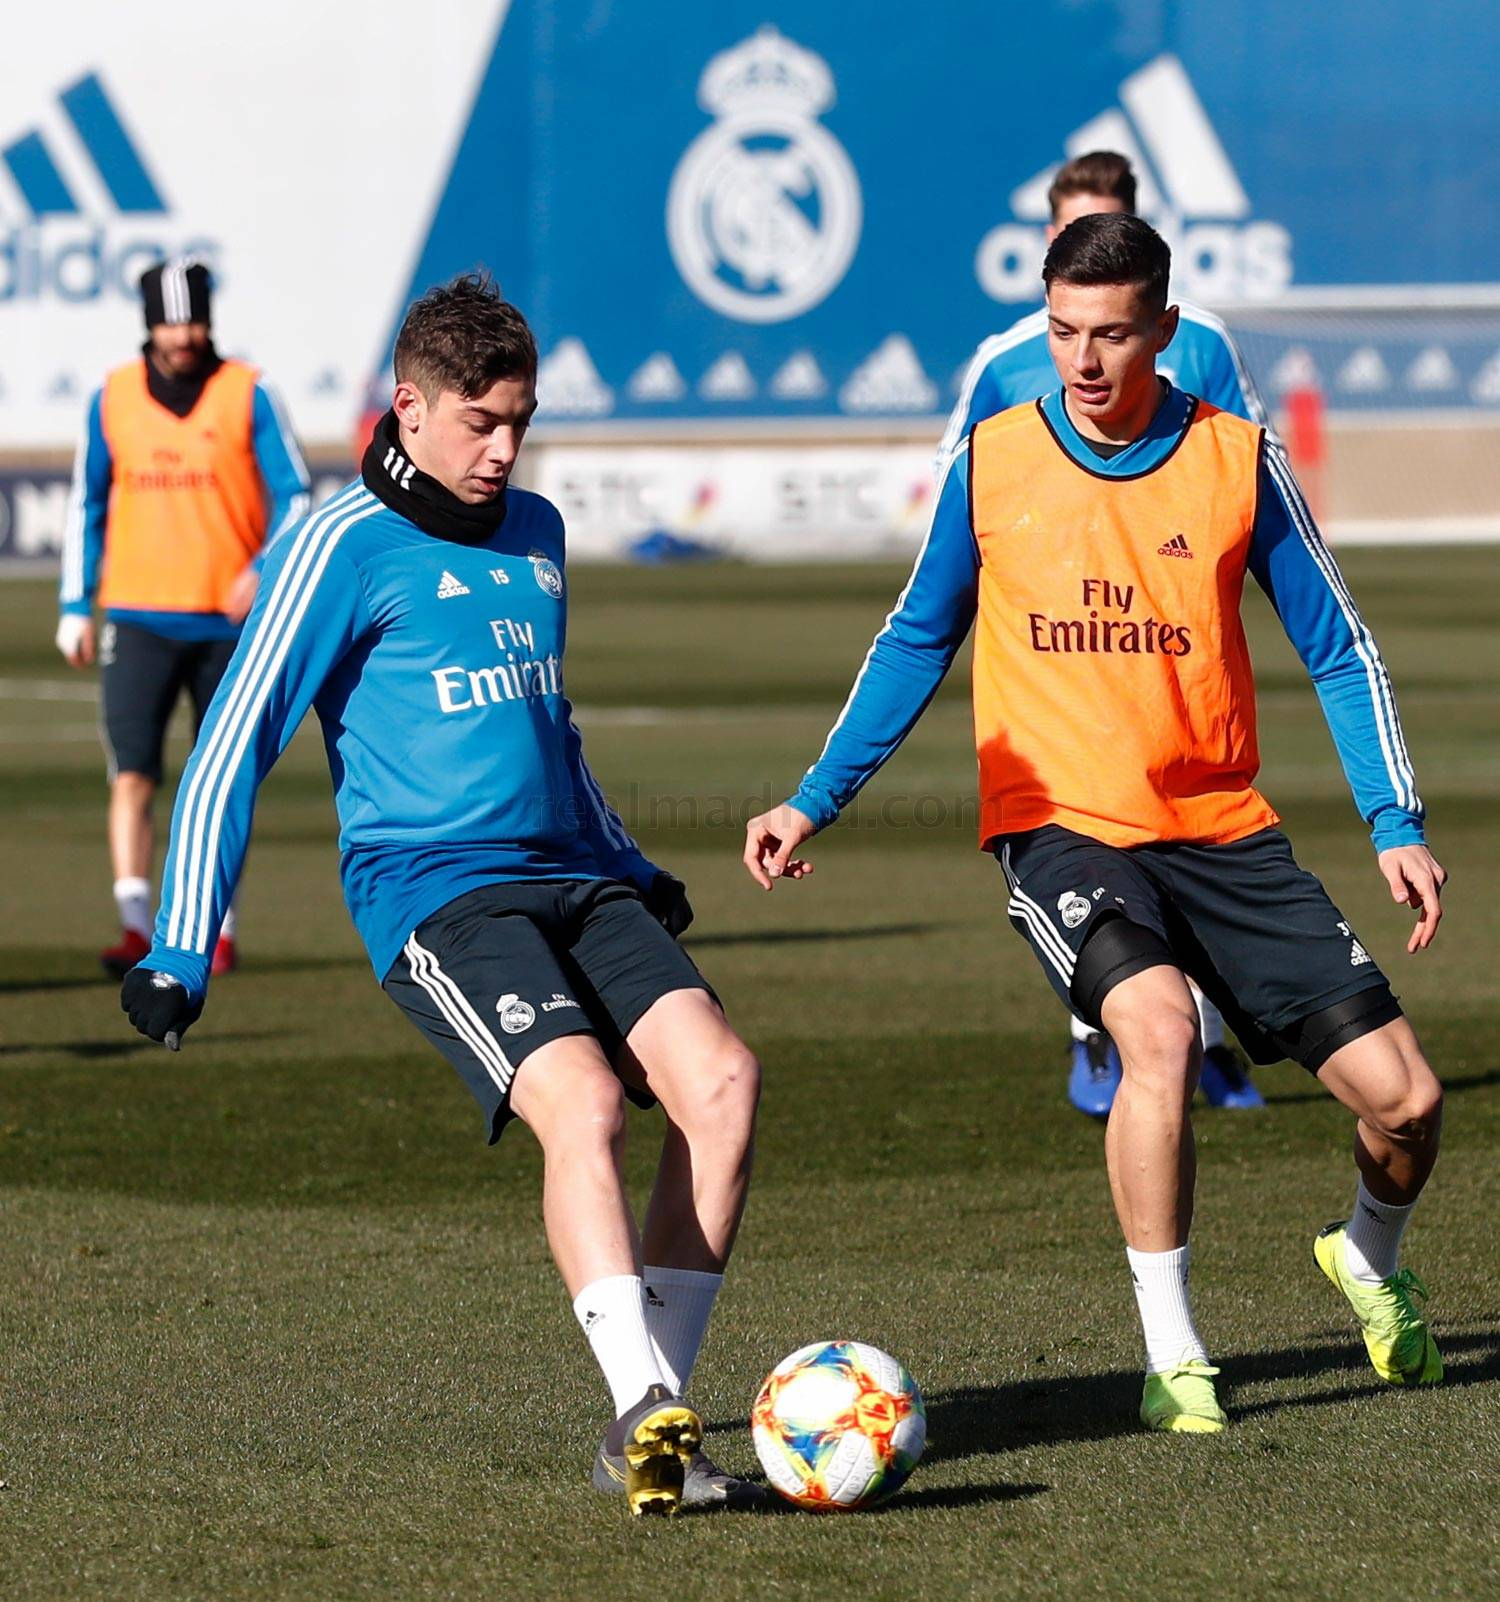 Real Madrid - Entrenamiento del Real Madrid - 30-01-2019